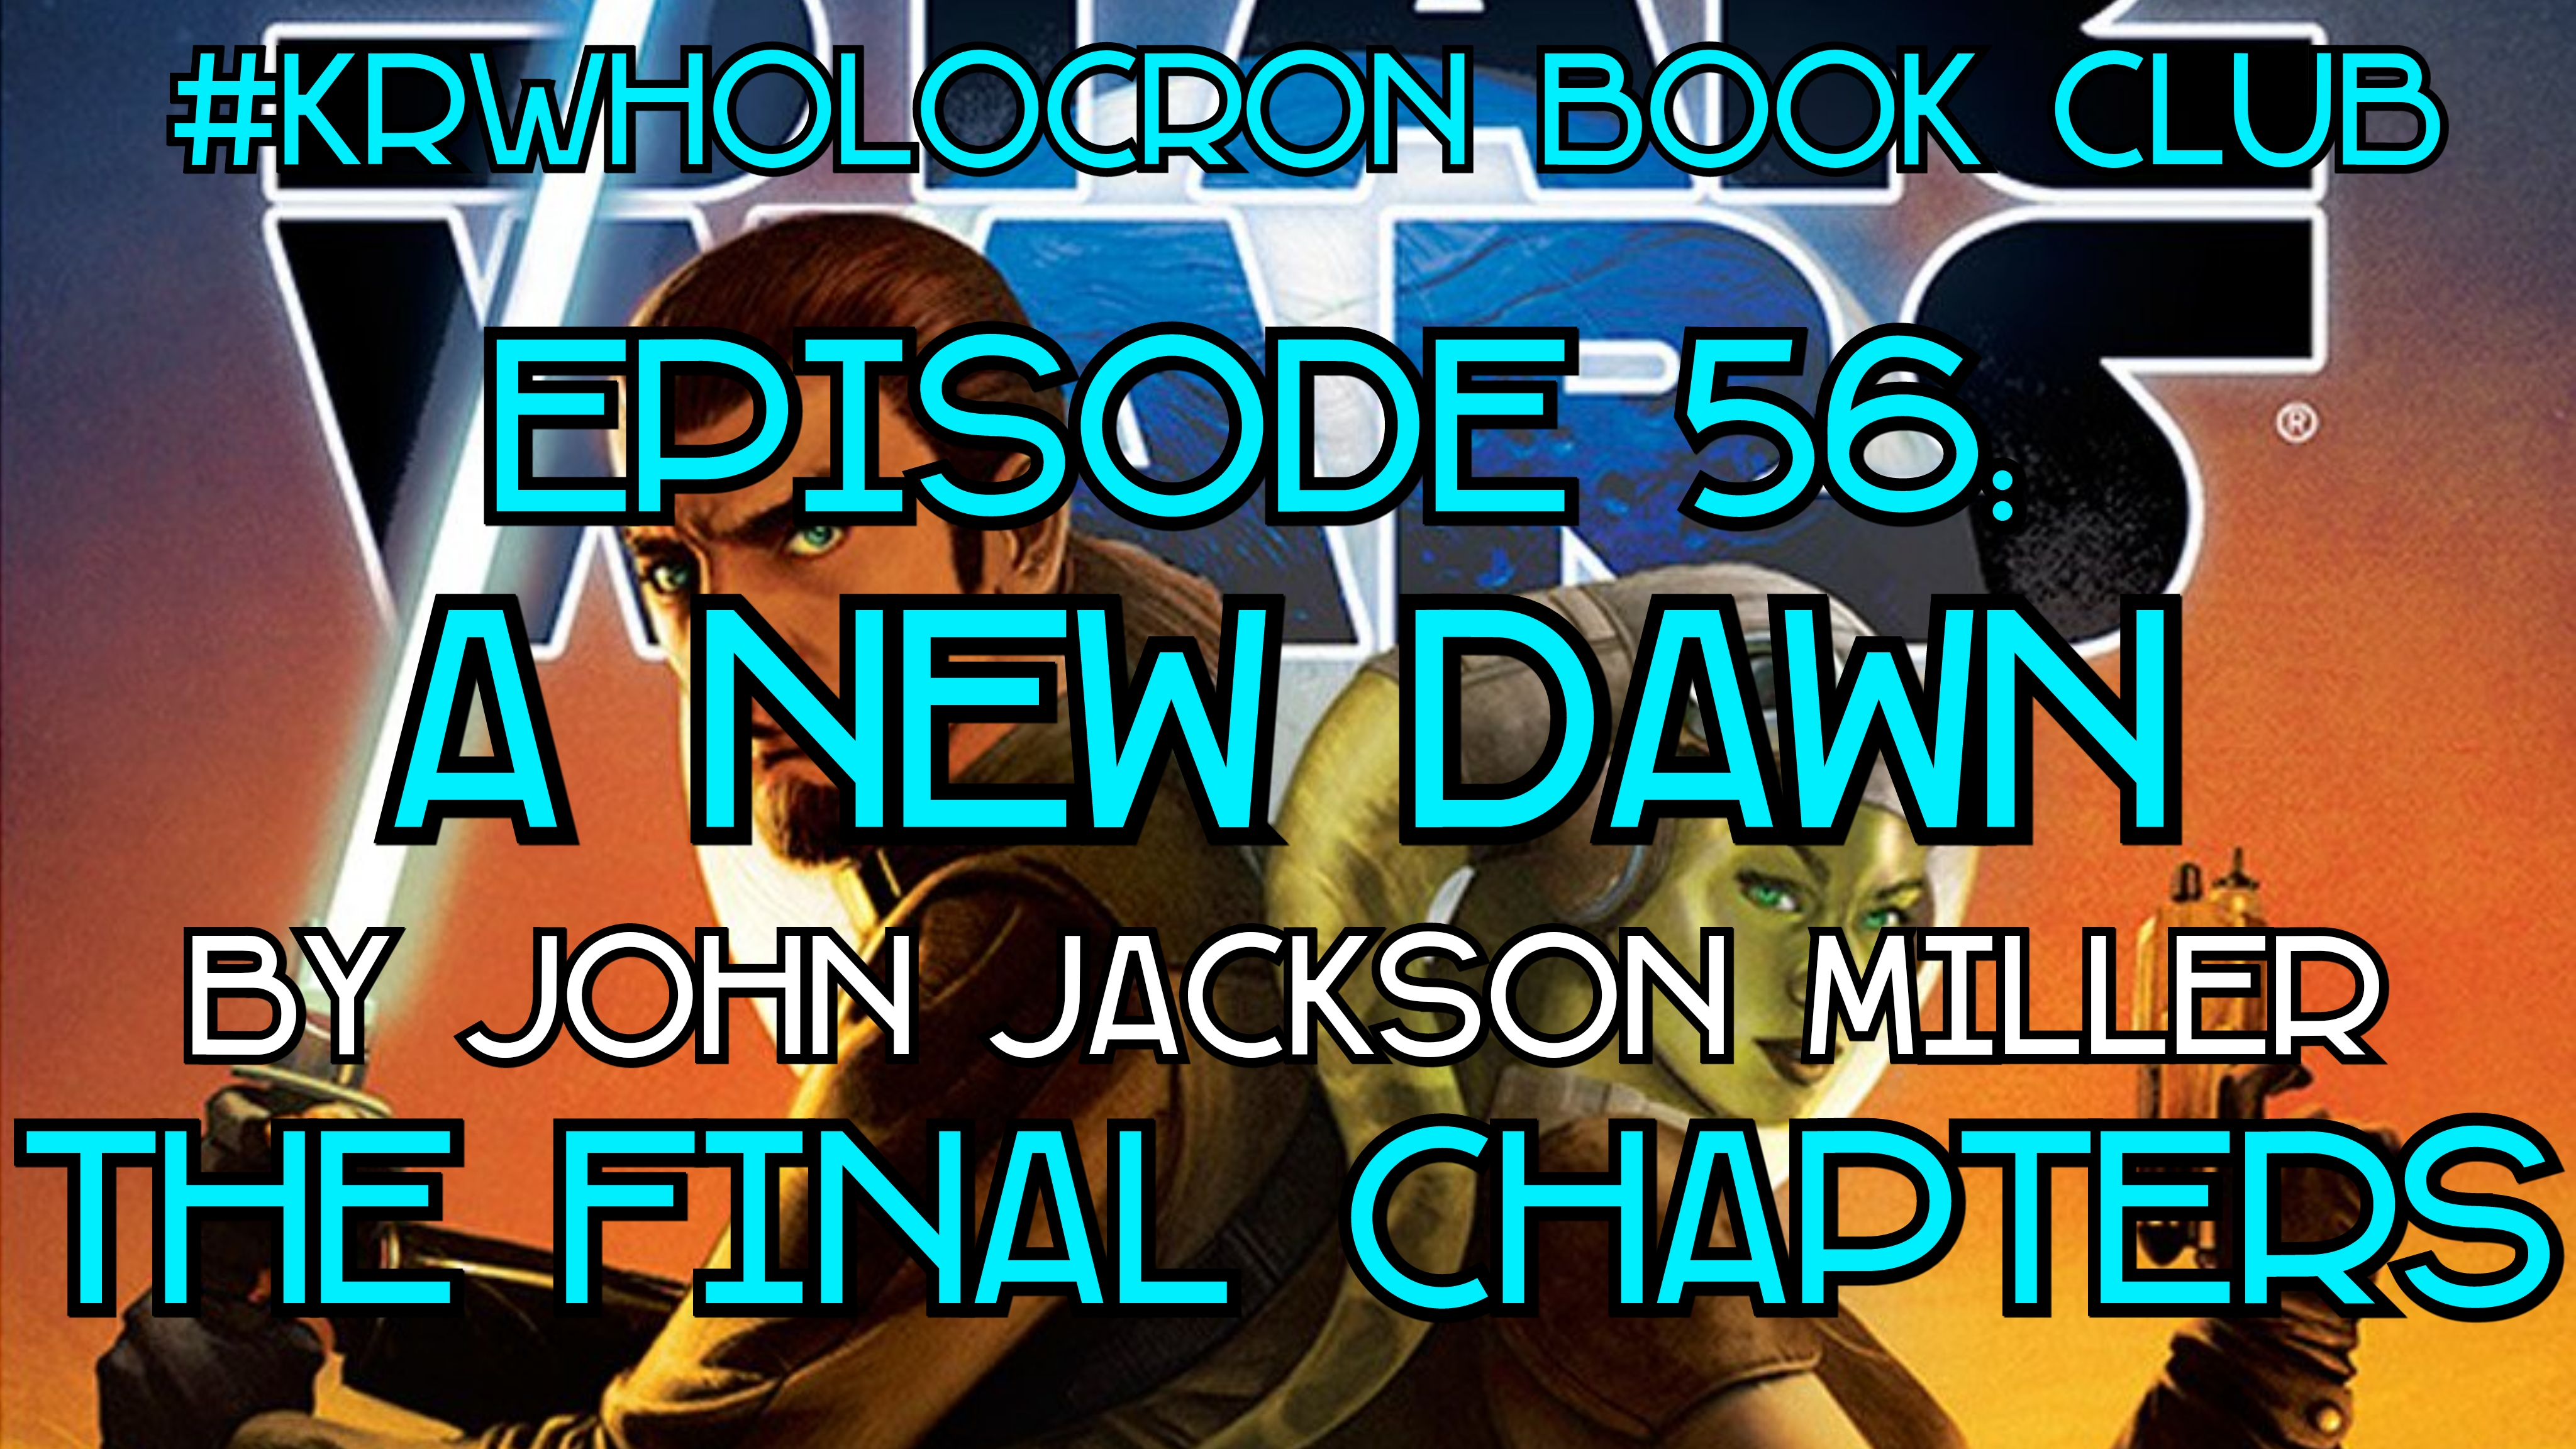 Episode 56: A New Dawn - The Final Chapters